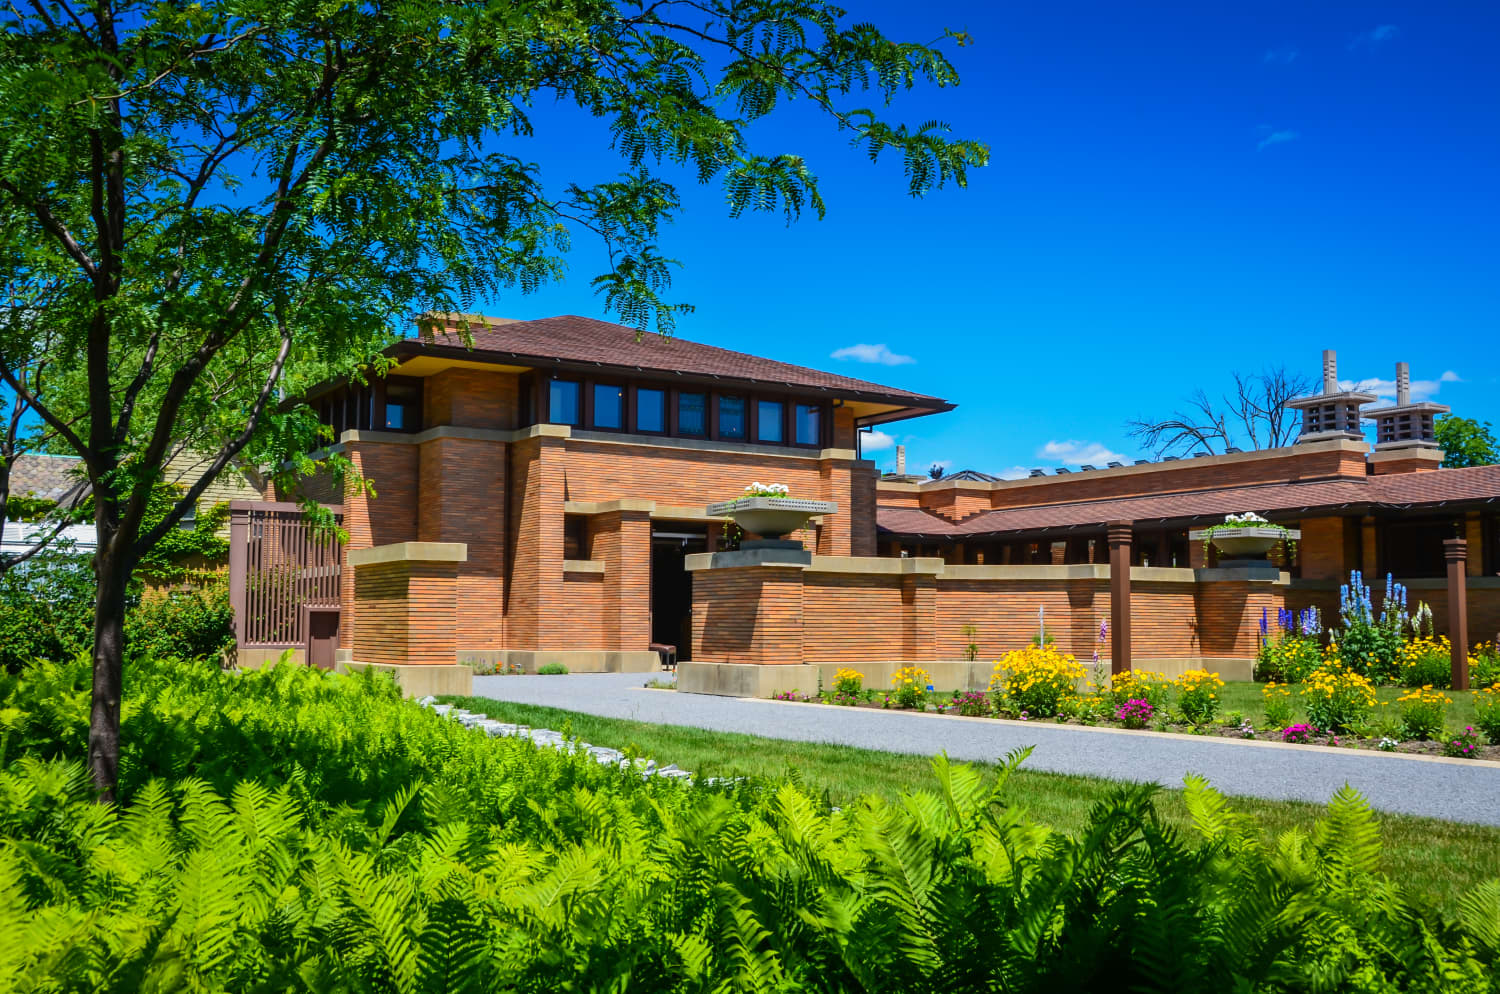 Frank Lloyd Wright Fans: Now You Can Build a Mini Taliesin West Out of Toy Bricks